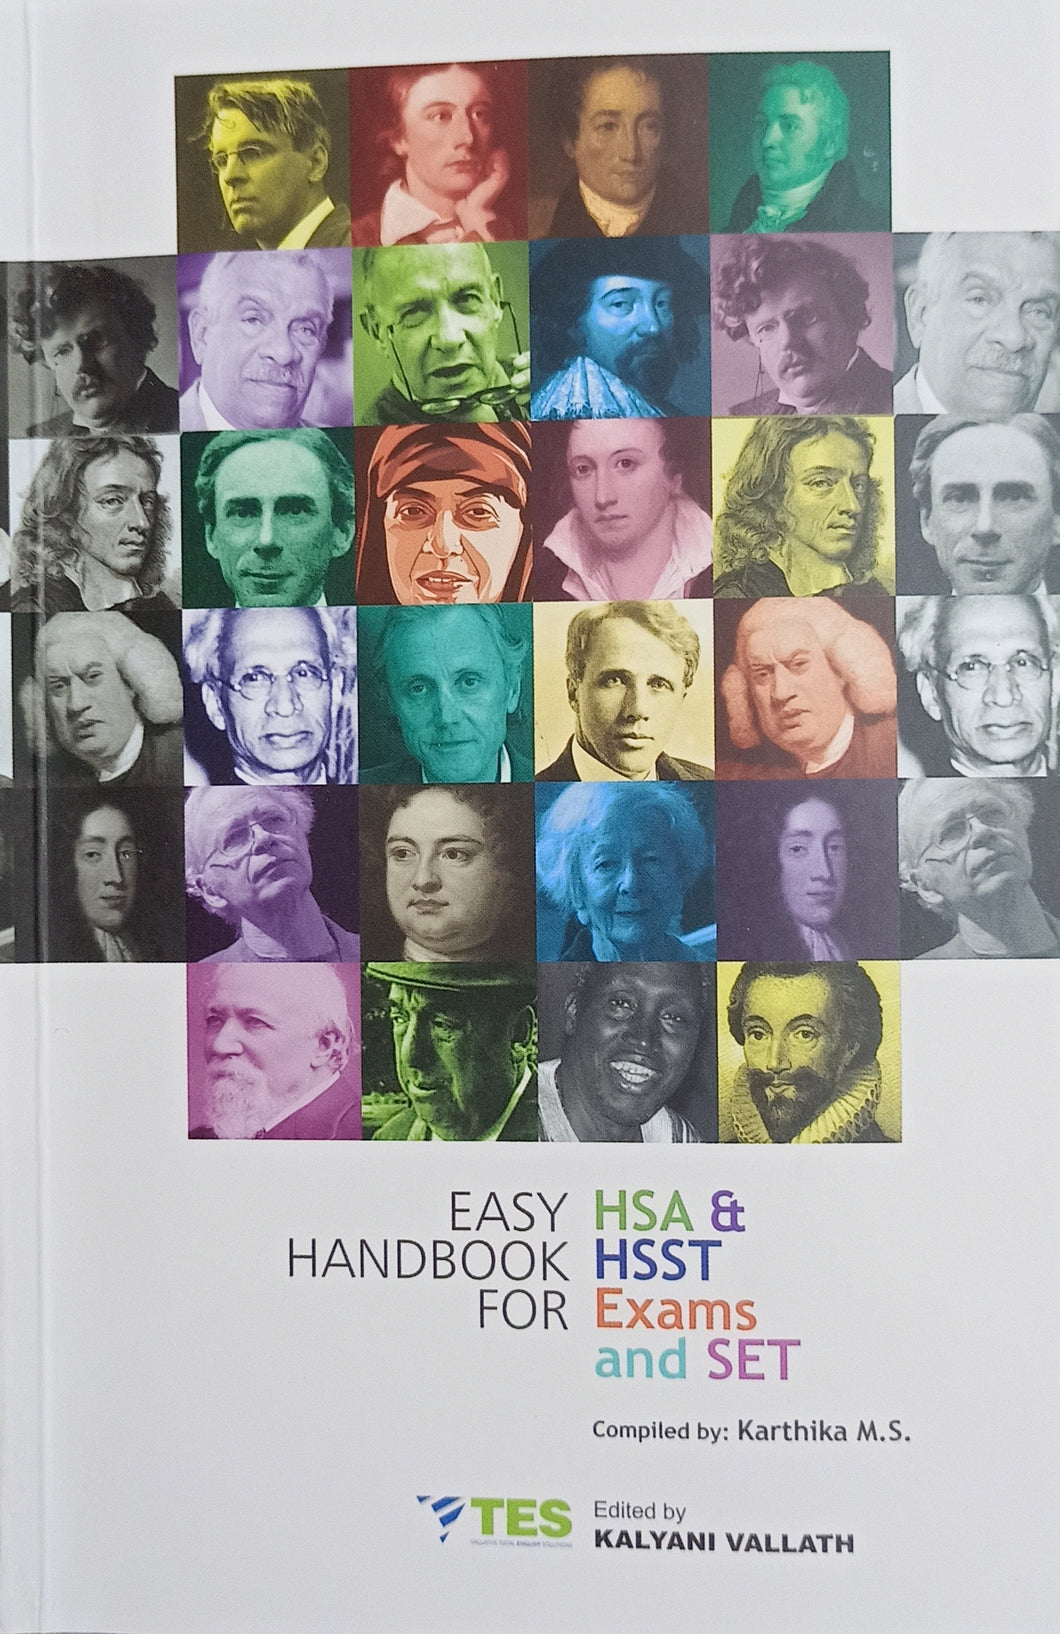 Easy Handbook for HSA, HSST Exams and SET